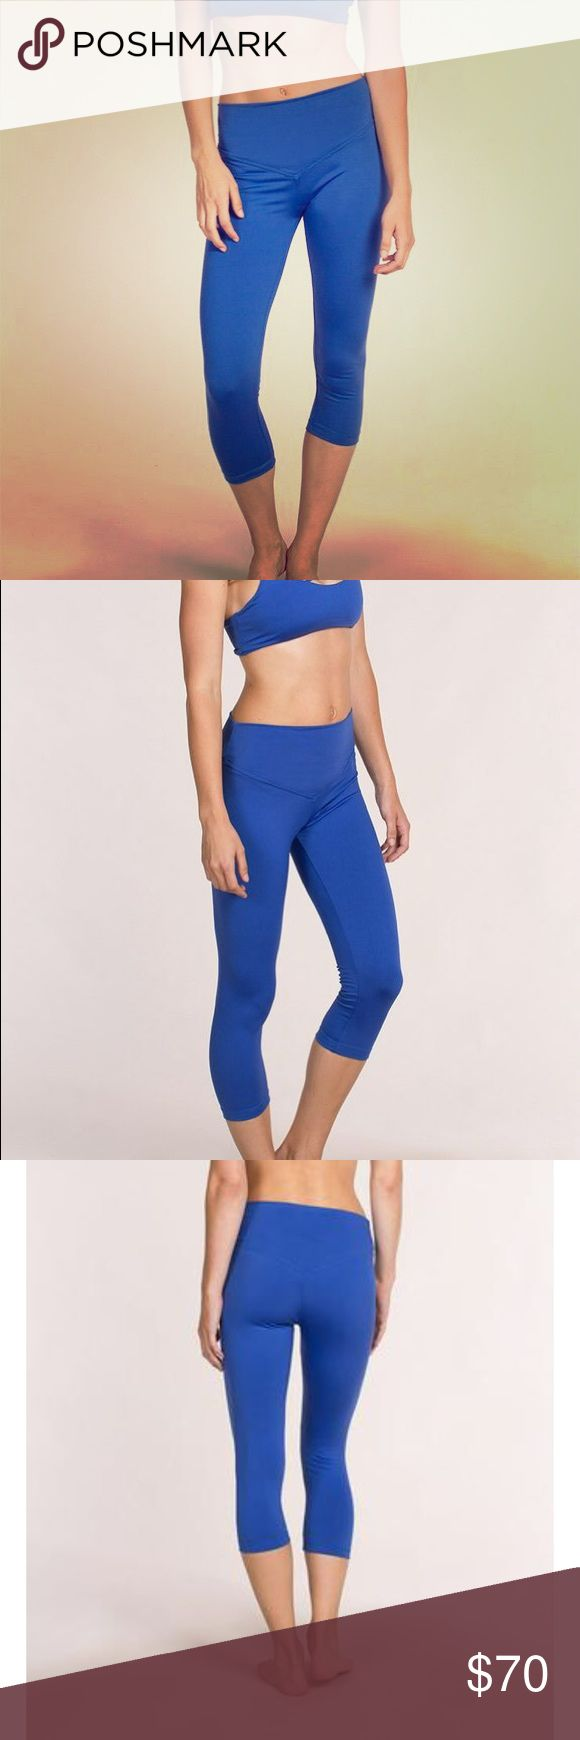 "Olympia Activewear Mateo Cerulean legging NWT Mateo 3/4 length Olympia legging in Cerulean, very comfortable, pretty color, size medium. Model is 5""9 and wearing a size small. Olympia Activewear Pants Leggings"